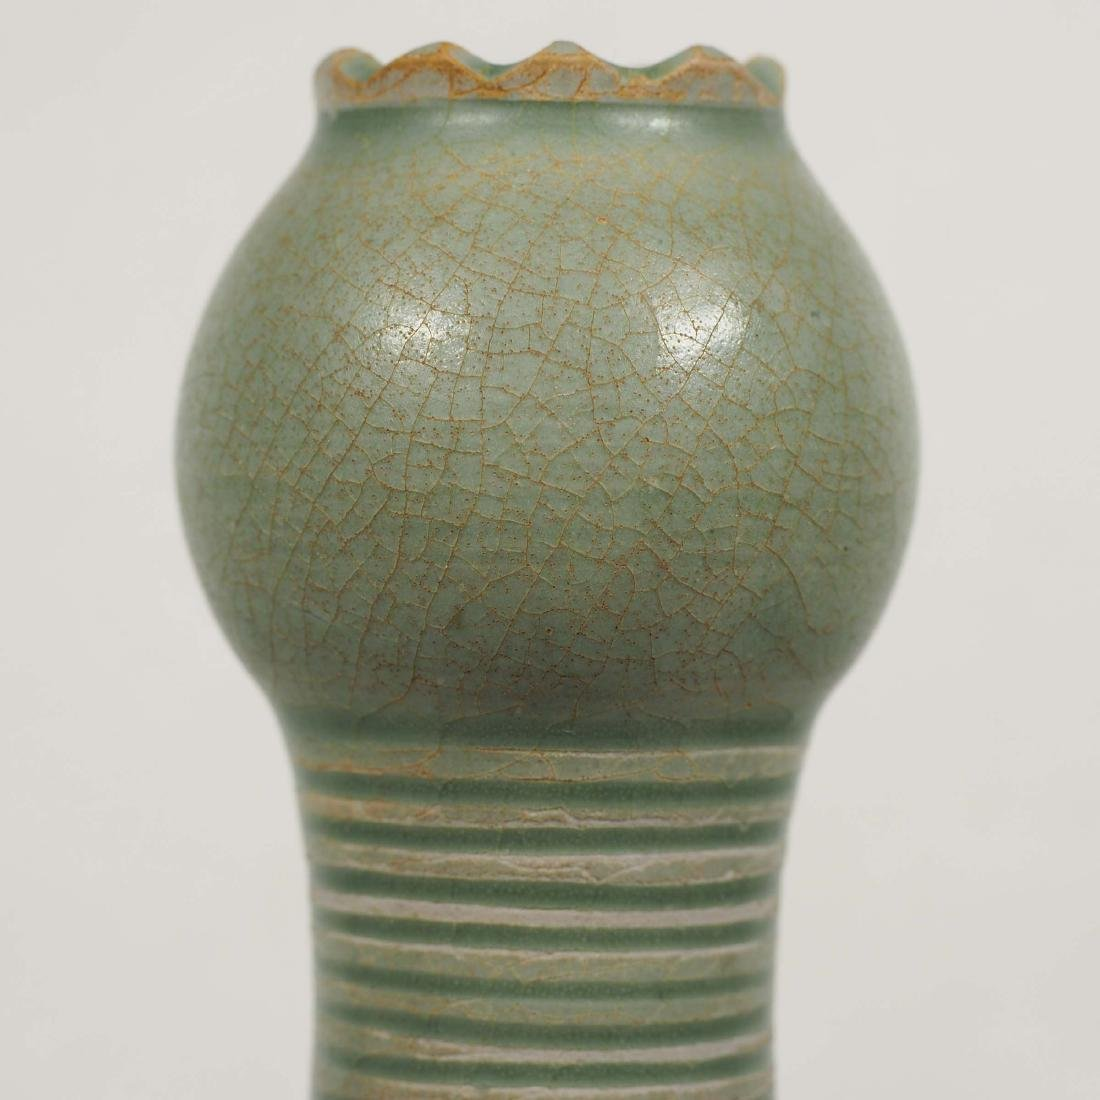 Yaozhou Garlic-Head Vase, Five Dynasty - 5